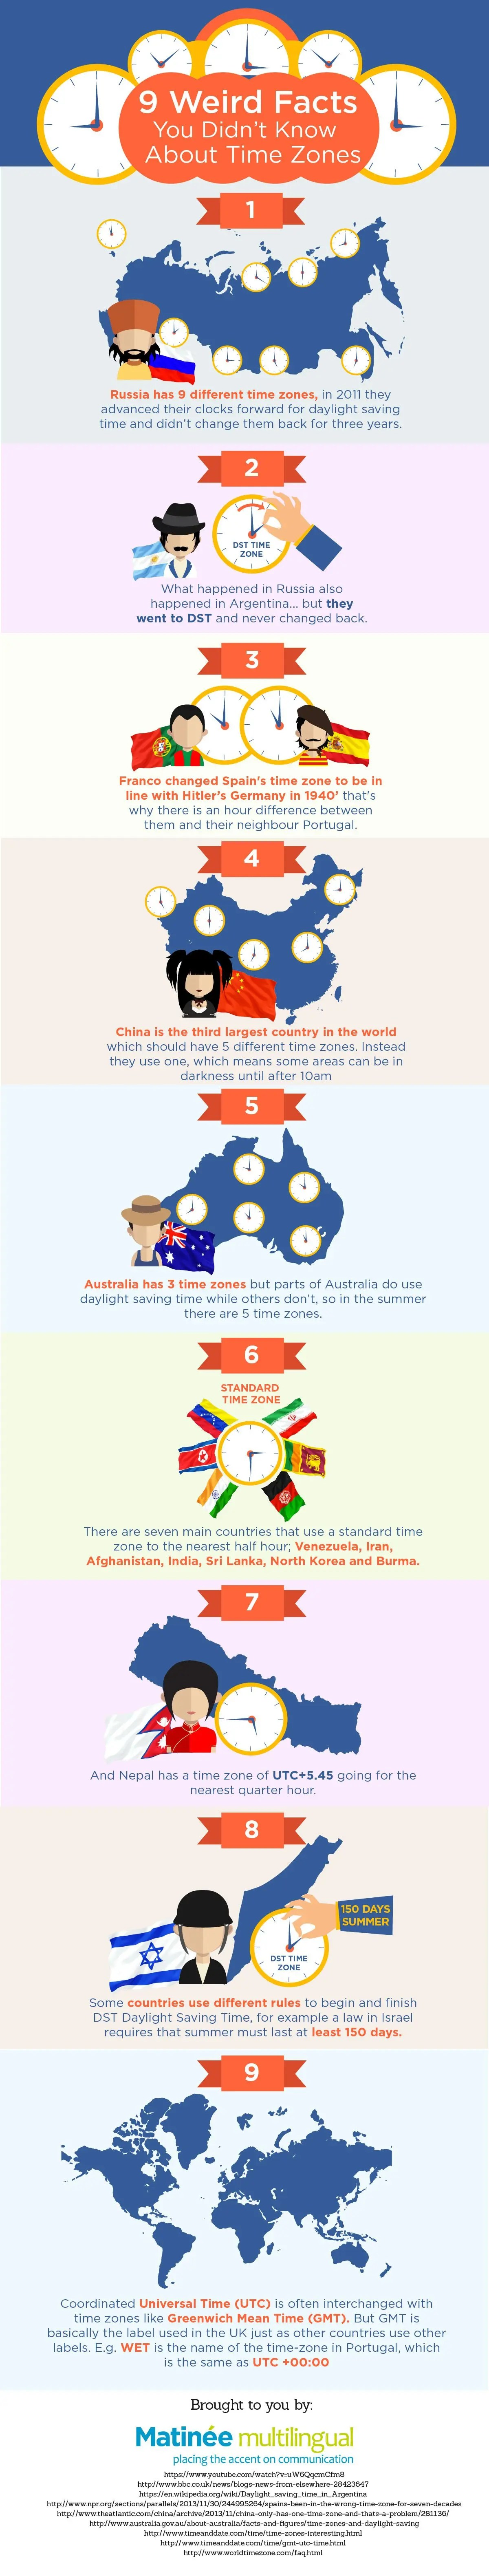 9 Weird Facts About Time Zones Infographic